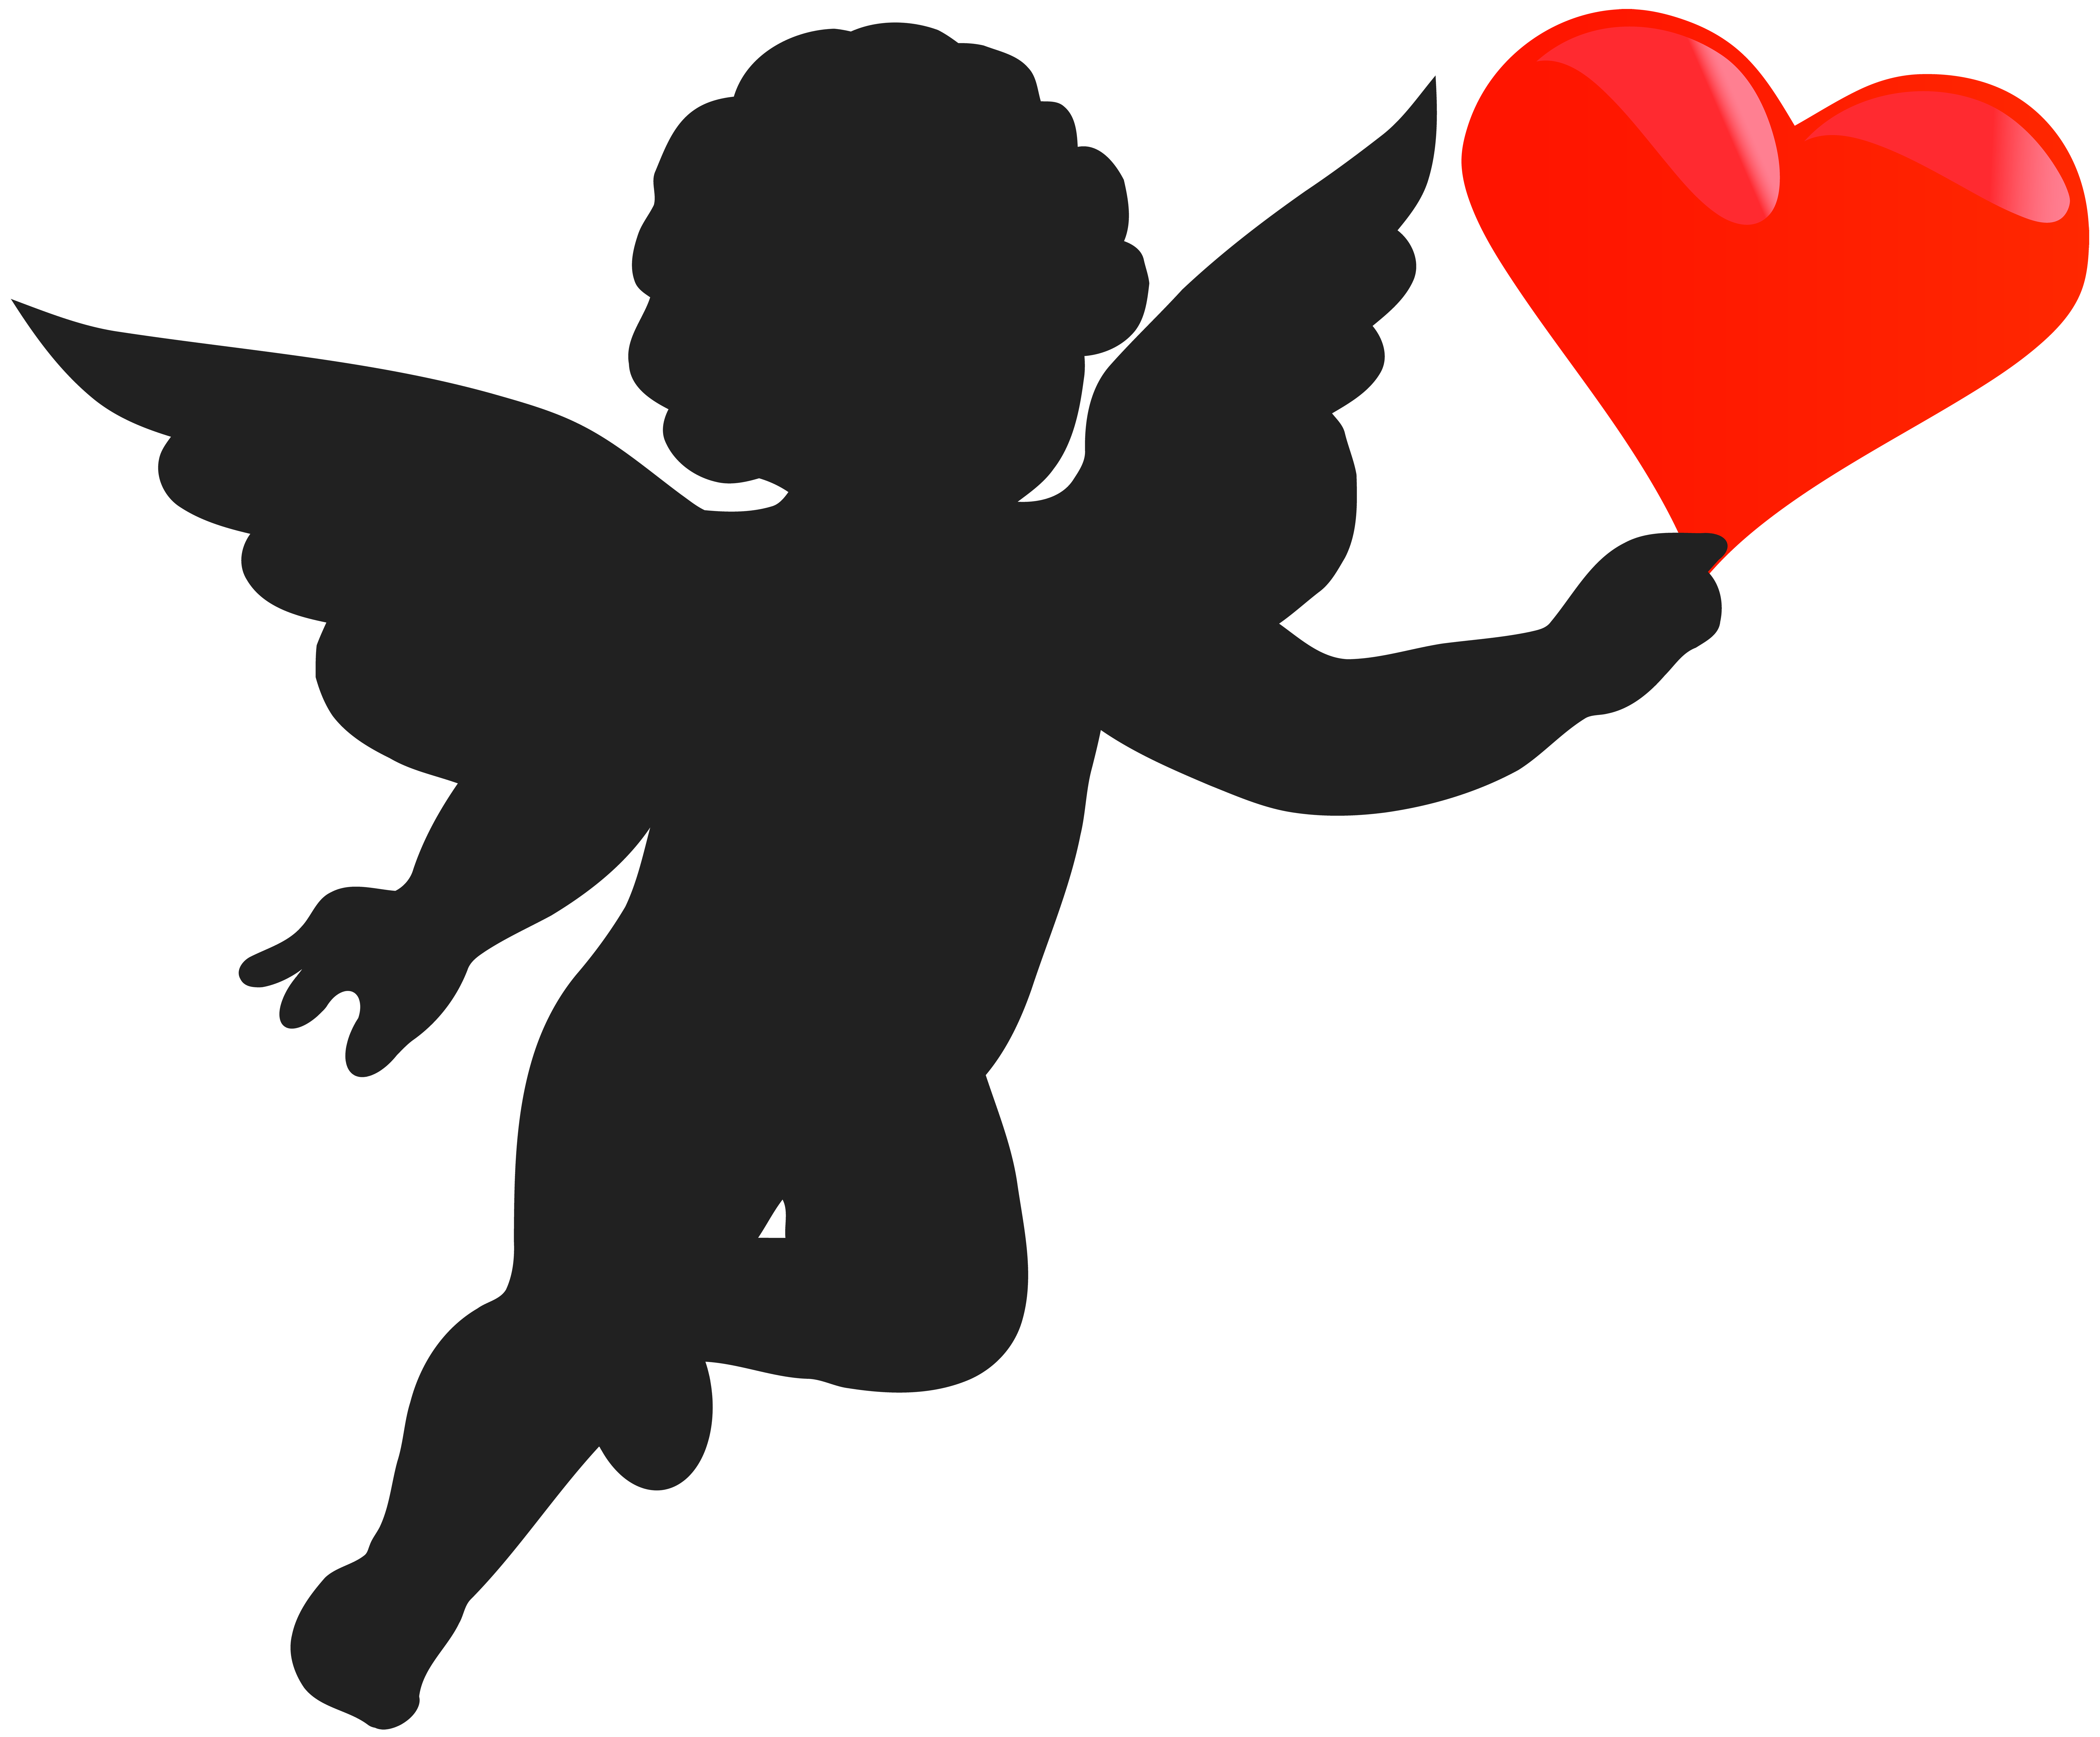 hight resolution of cupid with heart silhouette png clip art image